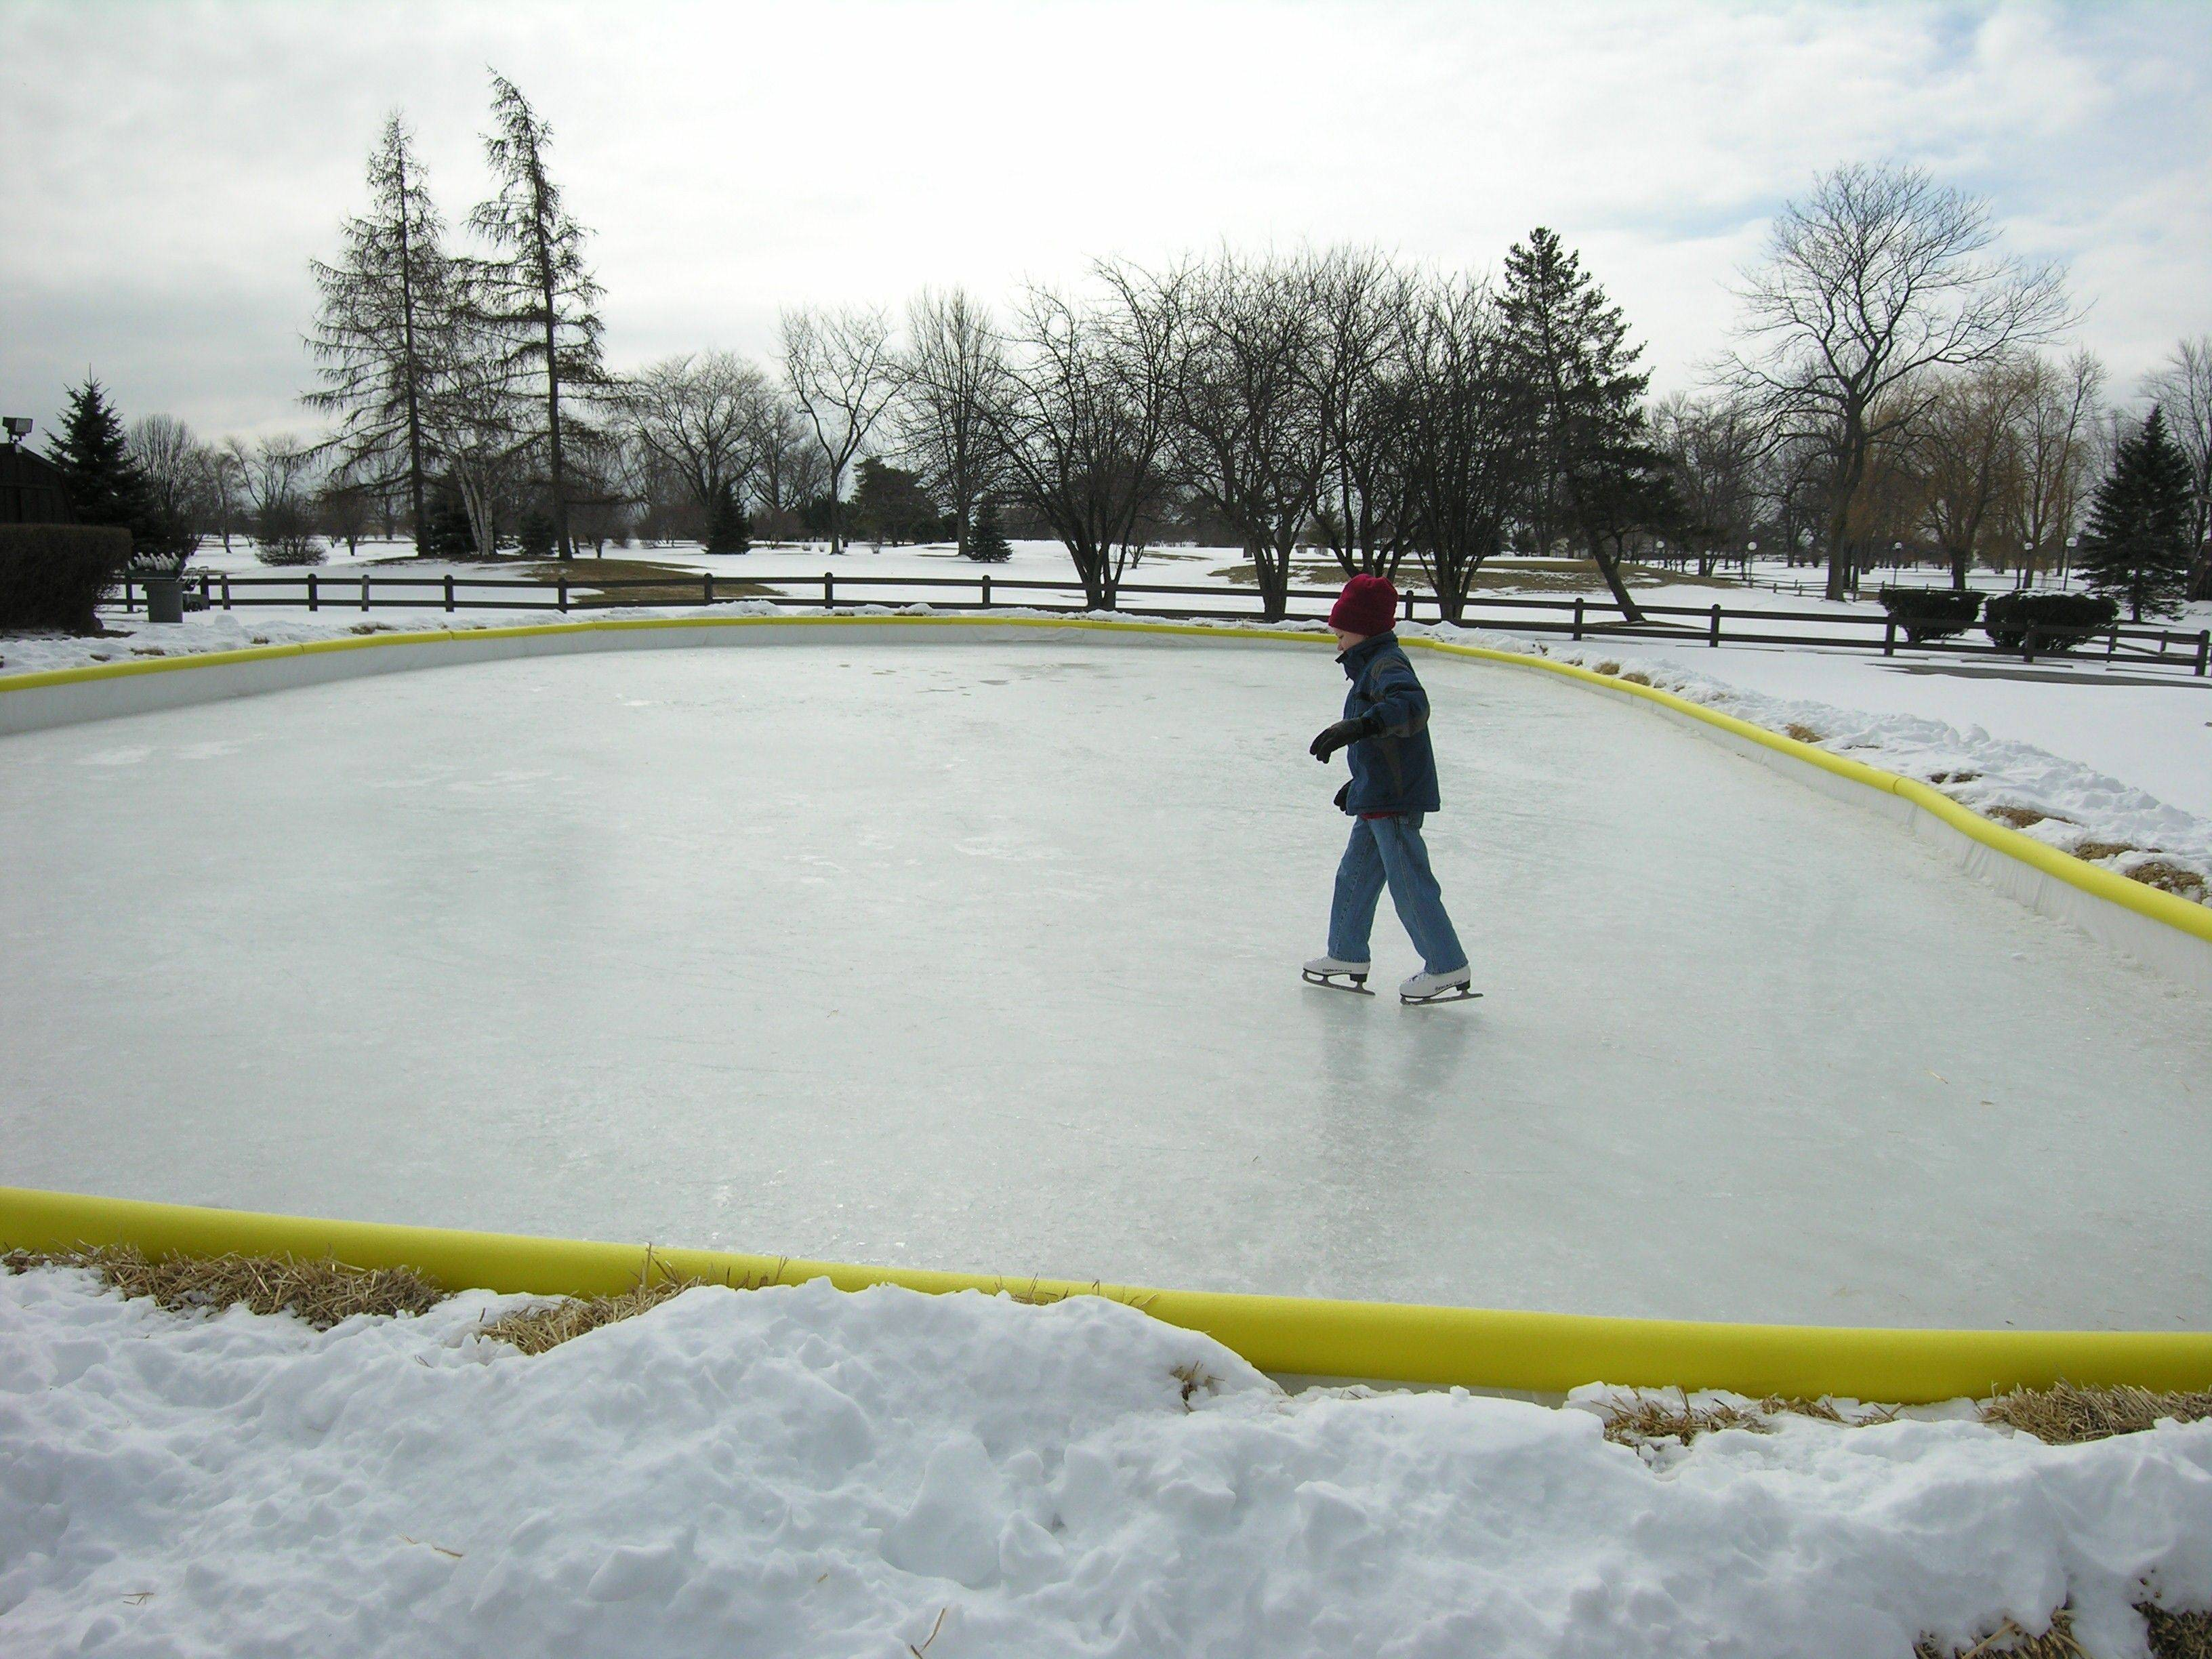 The Winter Escape package features skating, a scavenger hunt and more at Pheasant Run Resort in St. Charles.